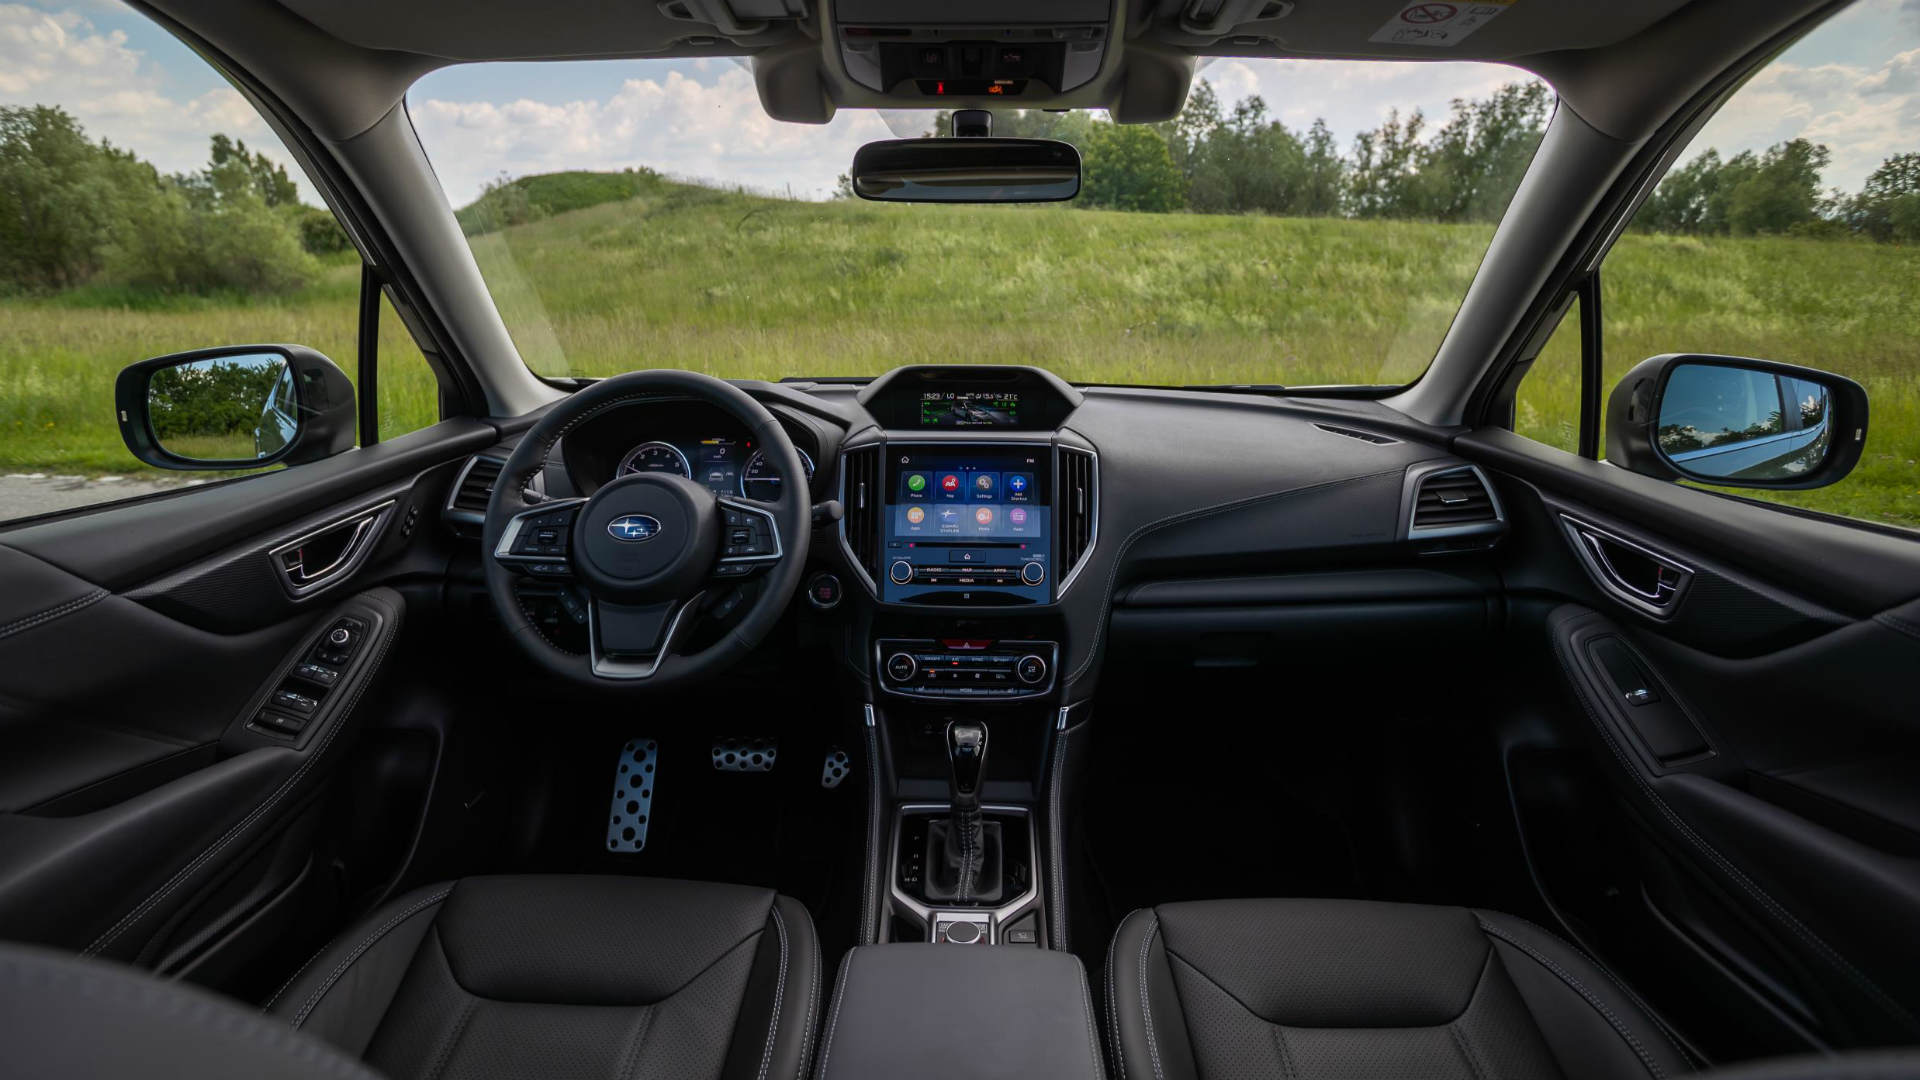 New Subaru Forester hybrid interior